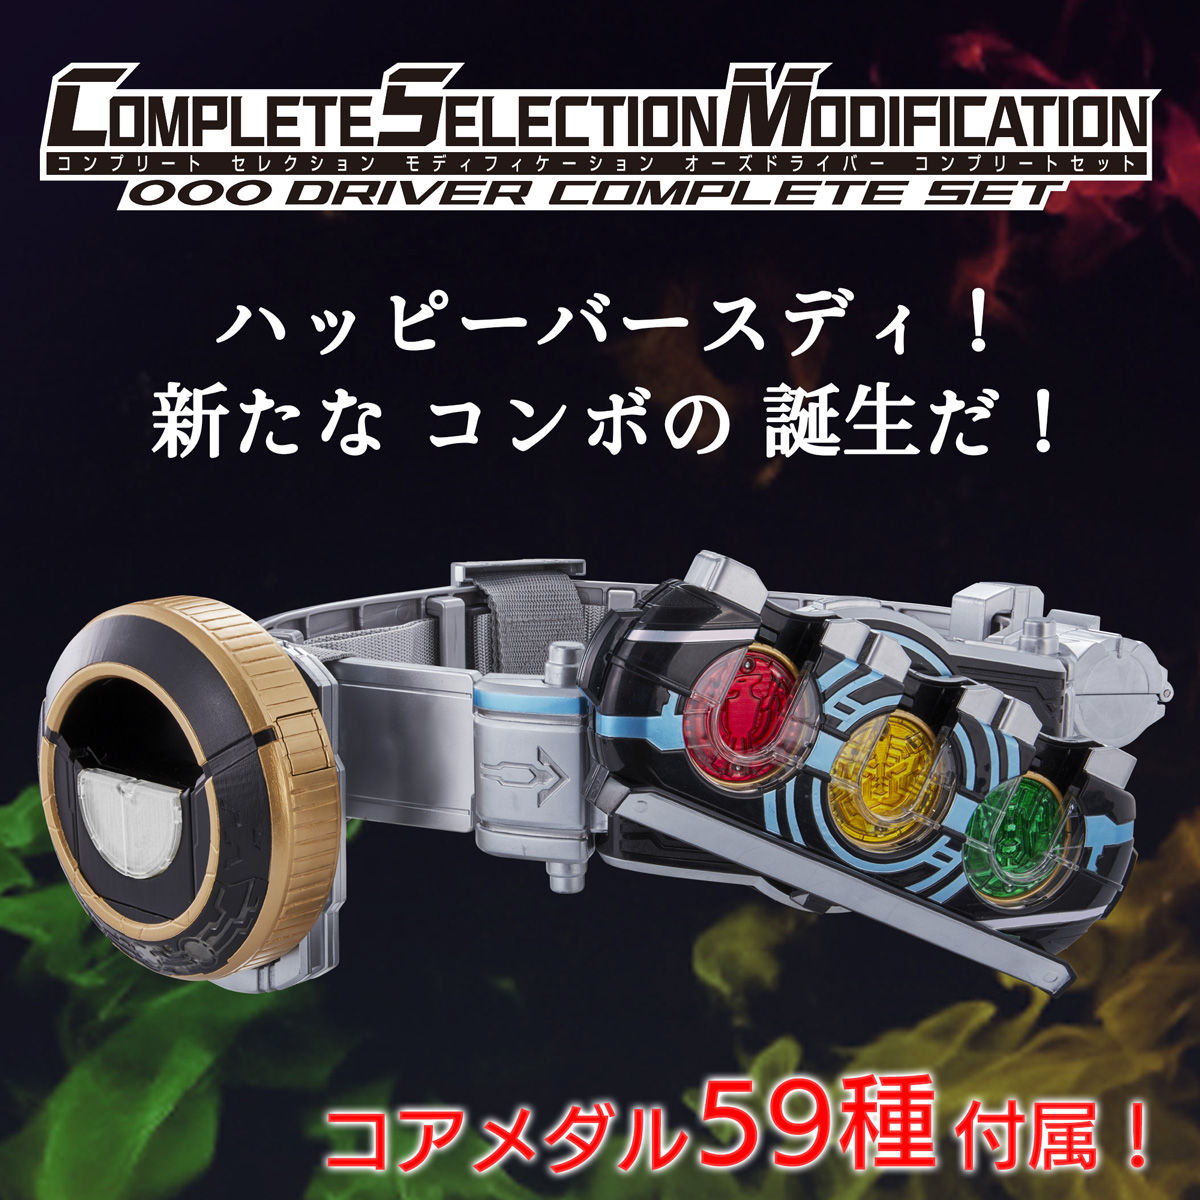 COMPLETE SELECTION MODIFICATION OOO DRIVER COMPLETE SET(CSMオーズドライバーコンプリートセット)-009